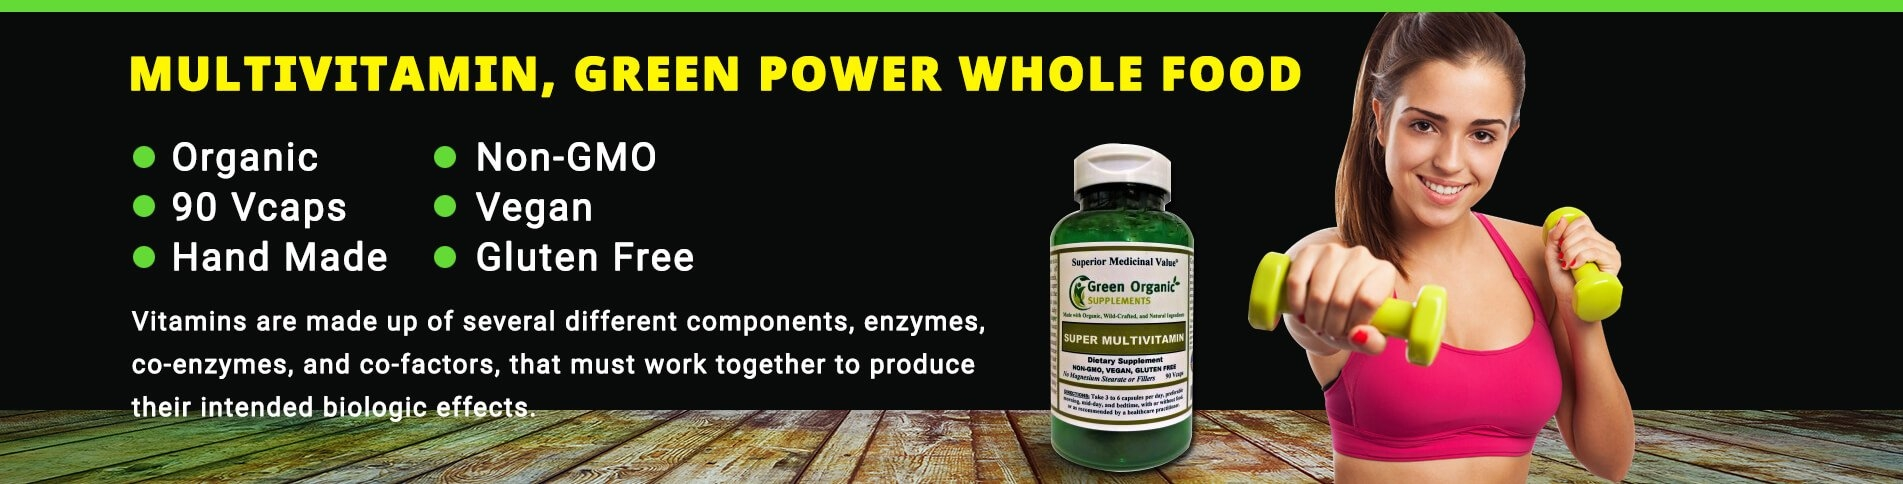 Green Organic Supplements, Inc (@greenorganicsupplements) Cover Image